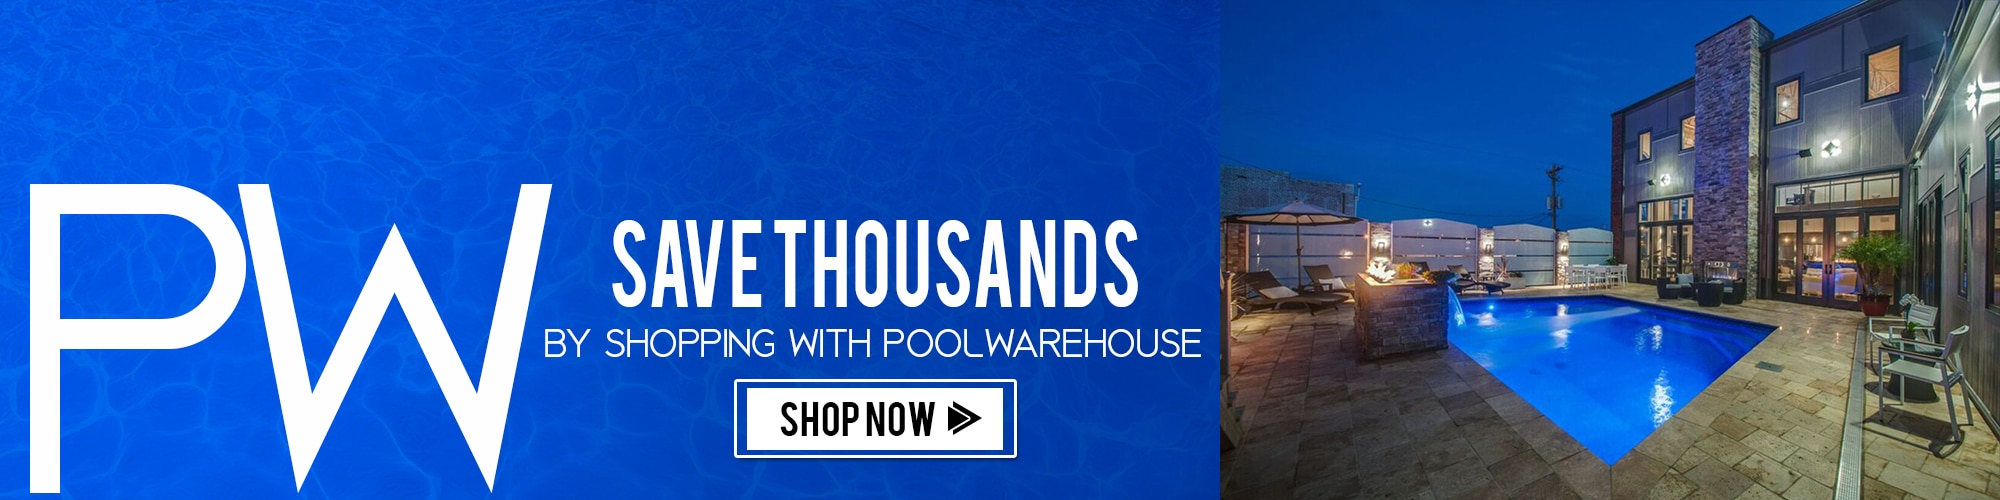 Save Thousands by Shopping with PoolWarehouse